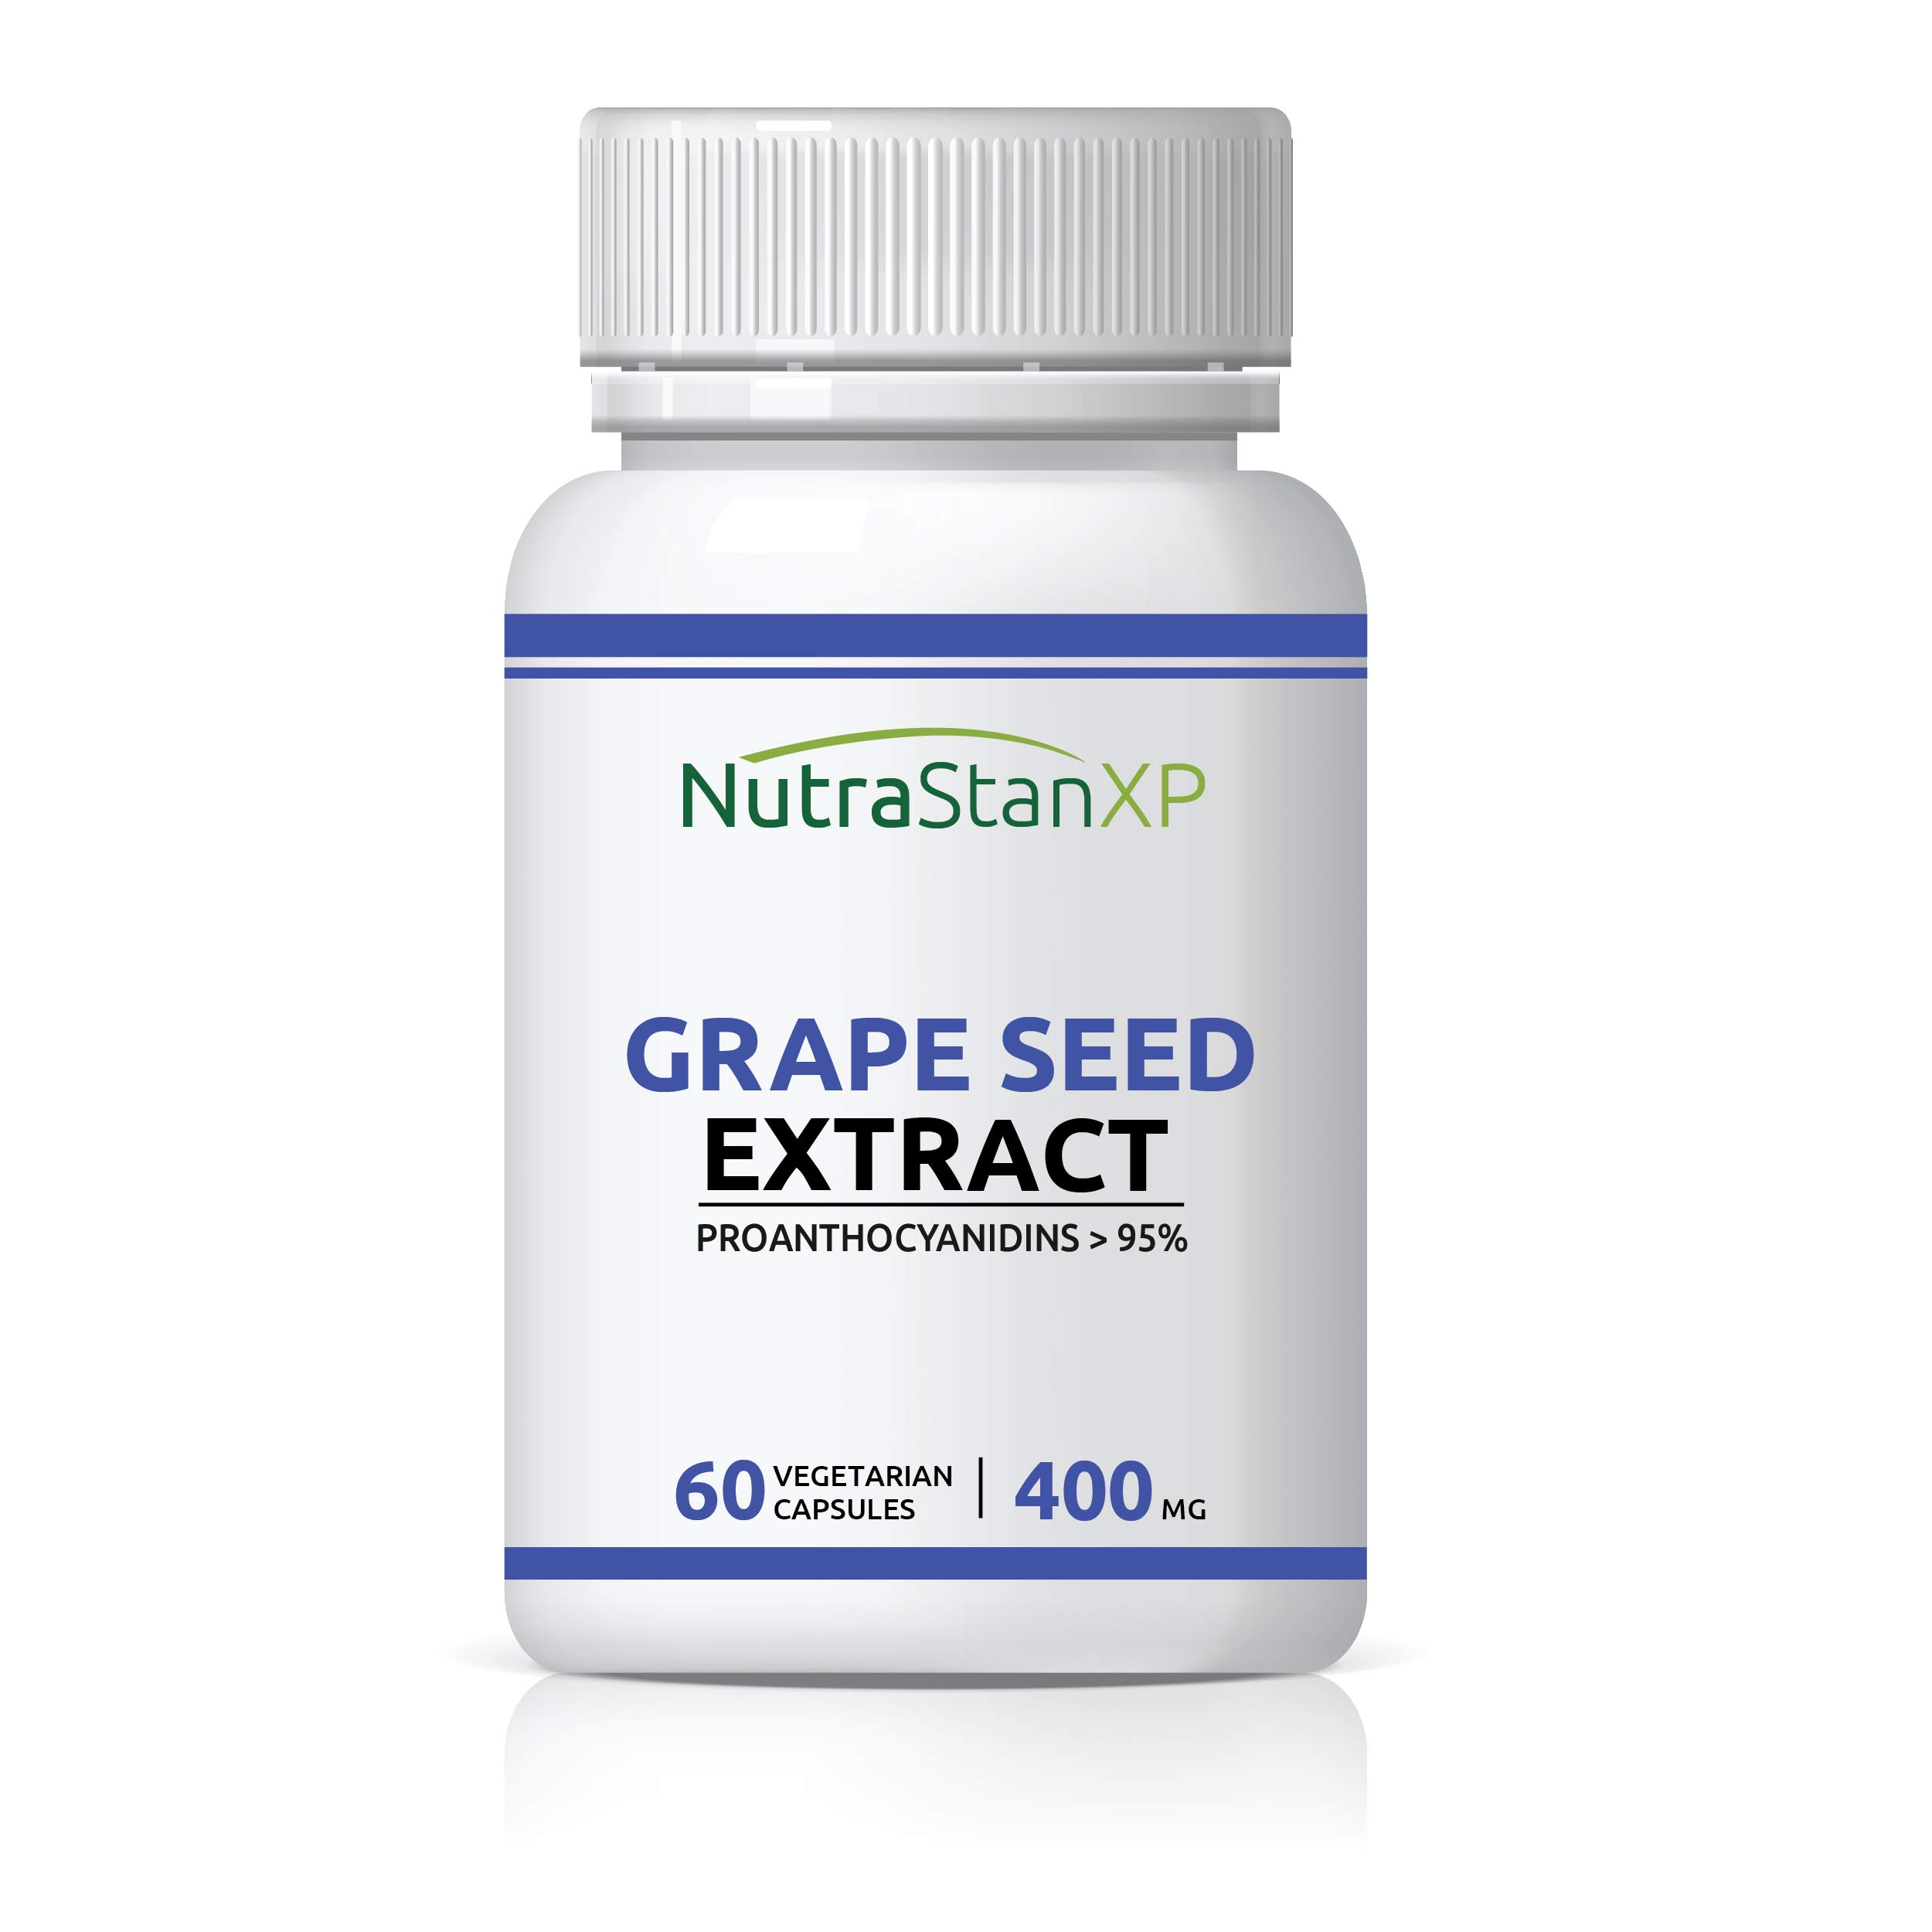 NutrastanXP Grape Seed Extract (Proanthocyanidins > 95%) Antioxidant, 400 mg - 60 Vegetarian Capsules